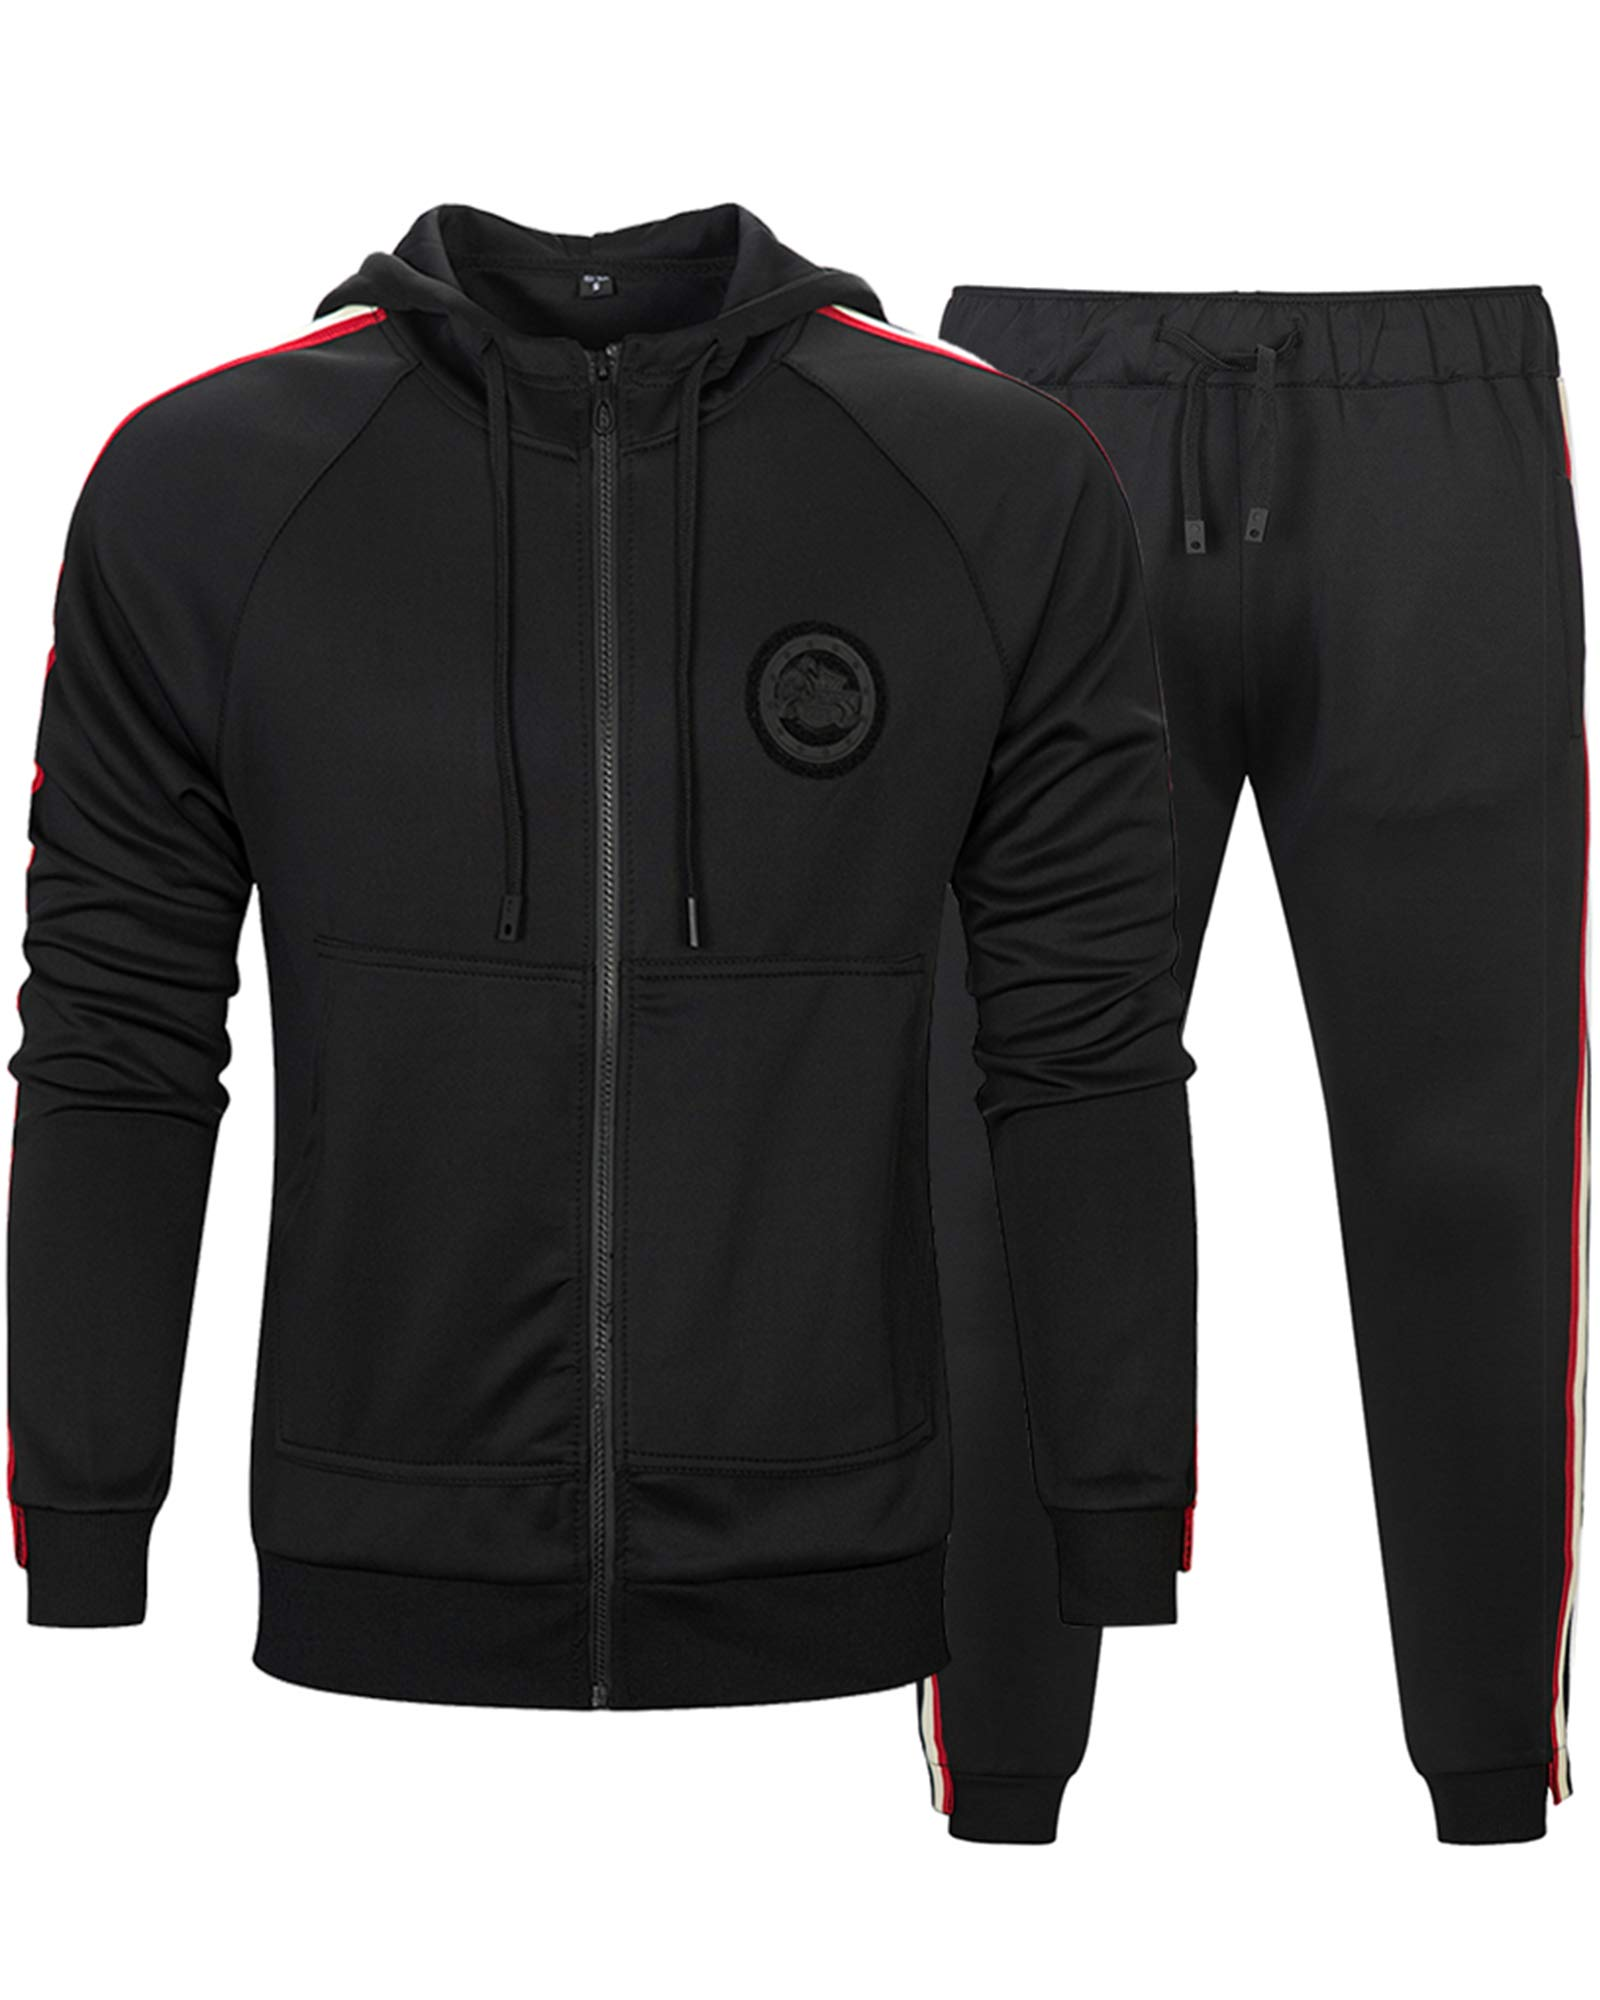 MACHLAB Men's Activewear Sports Jogging Sweat Suits Running TracksuitBlack XL